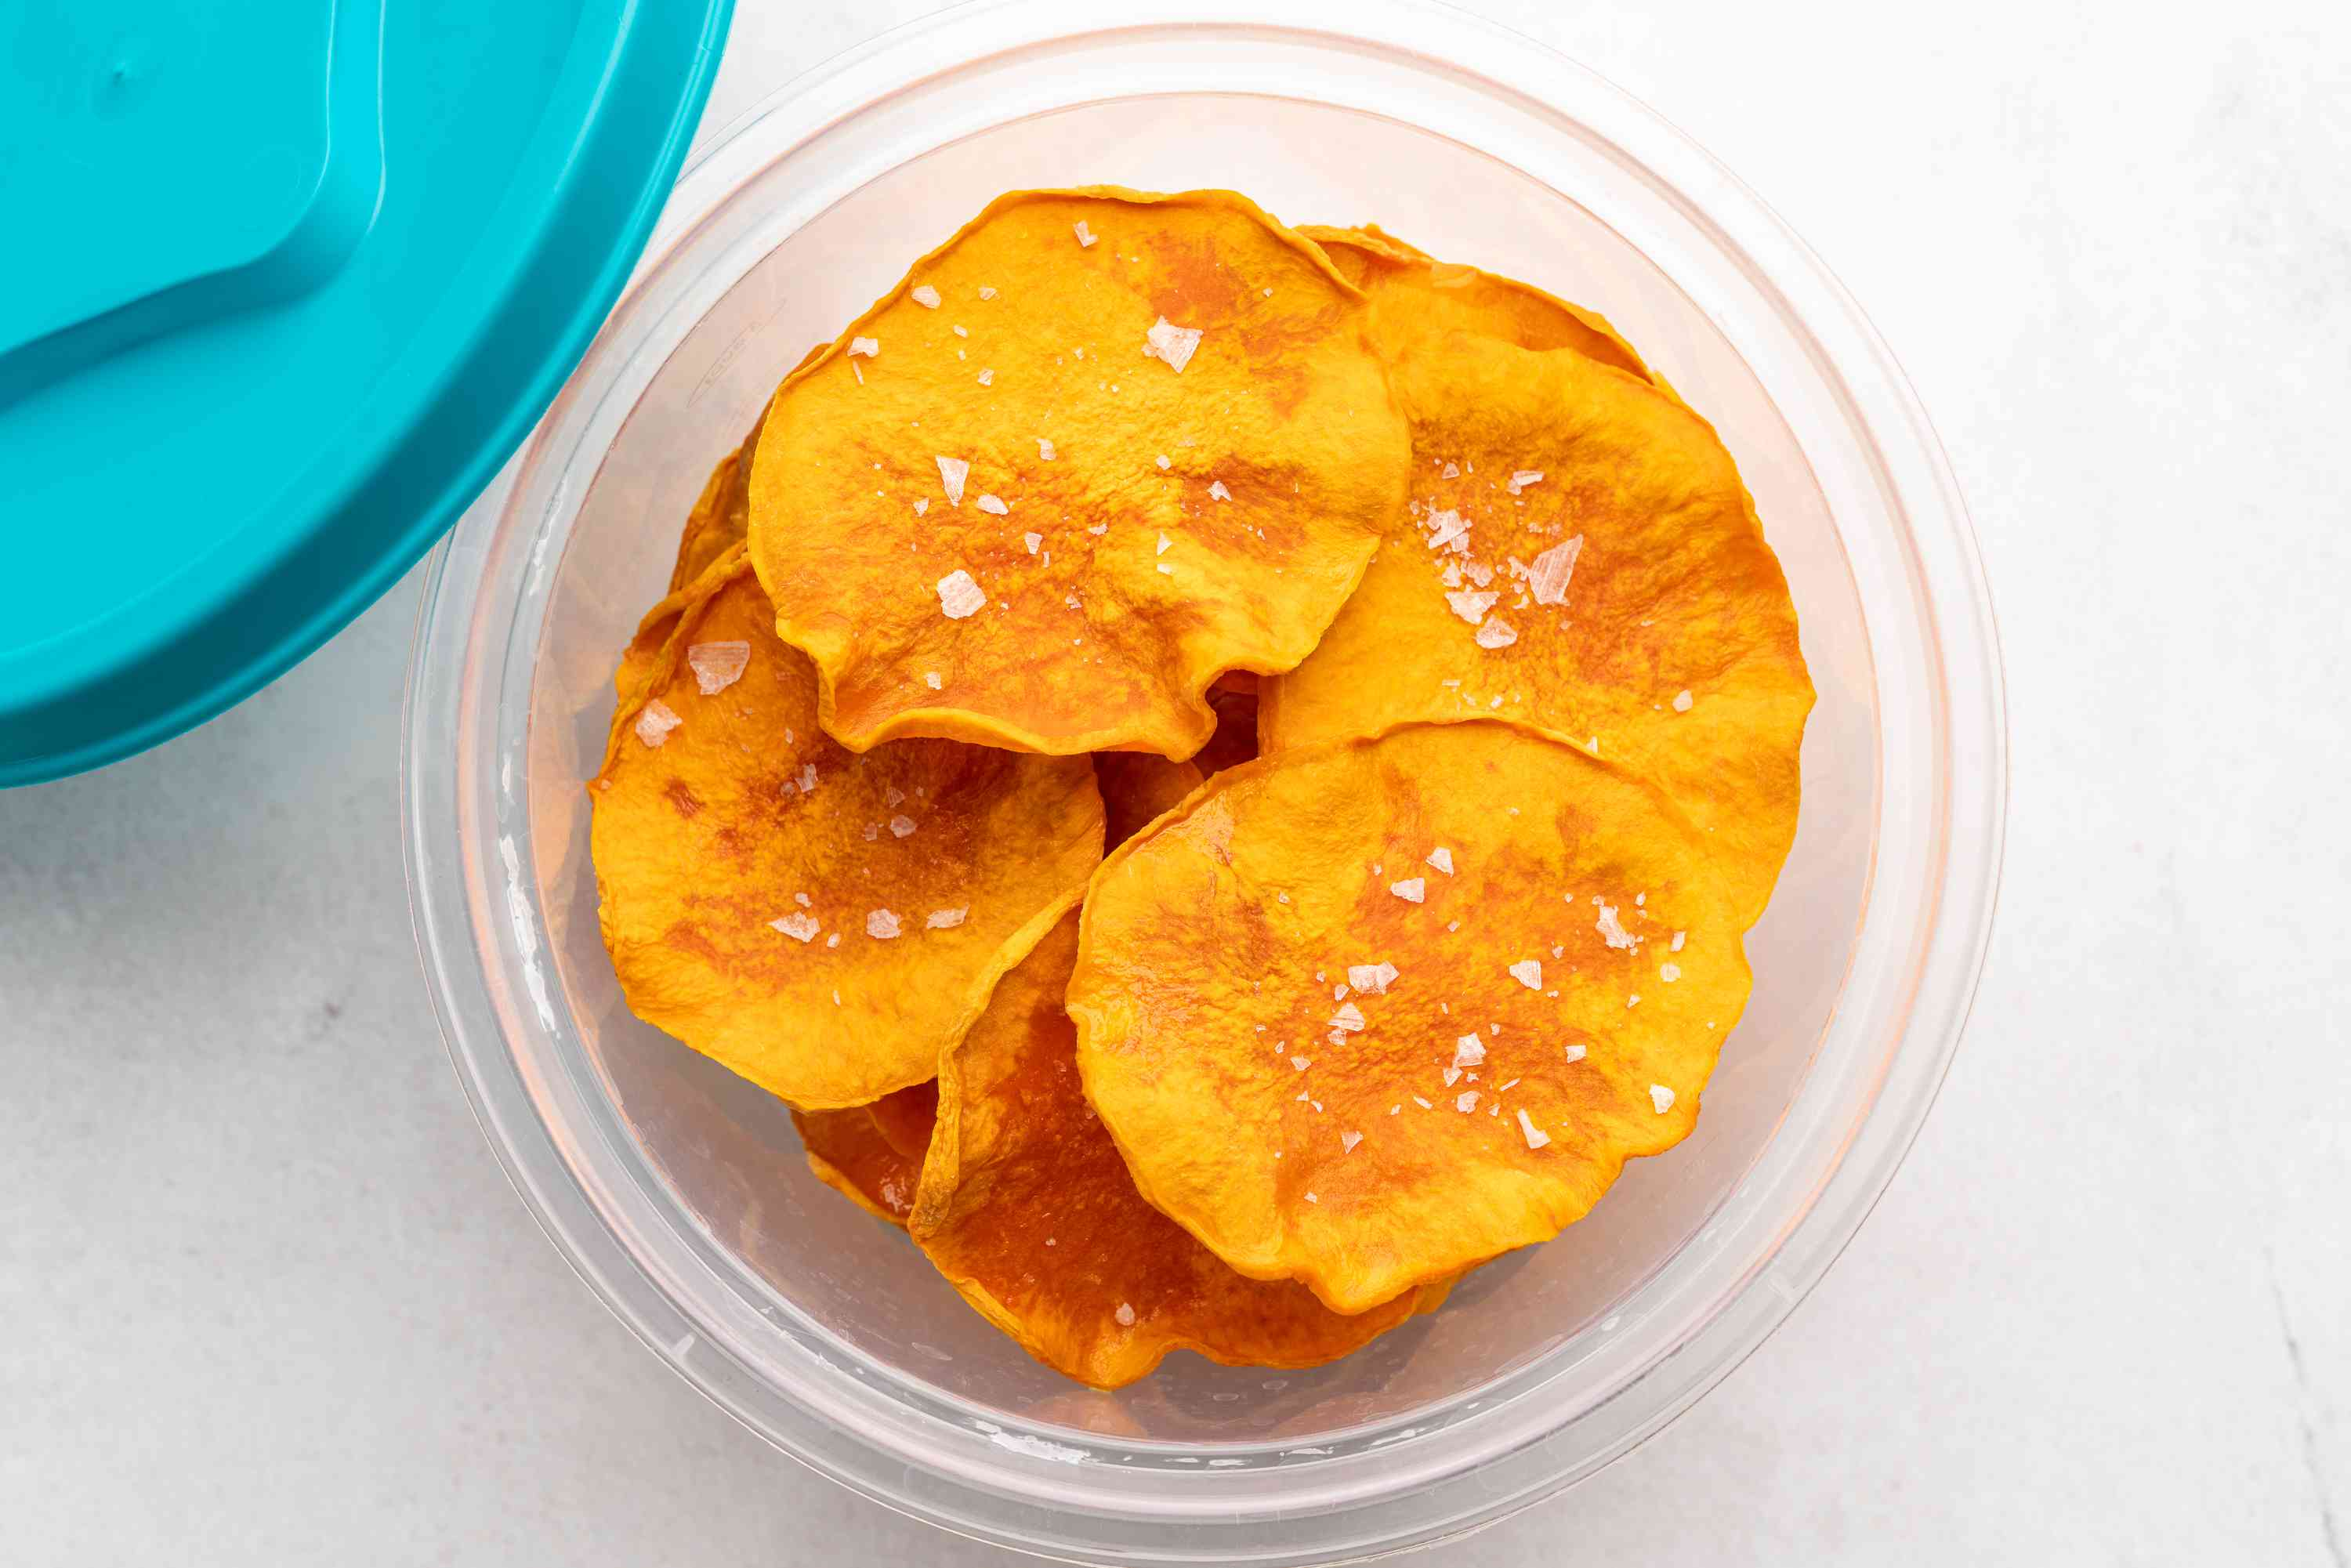 Butternut Squash Chips - Dehydrator Method in a container